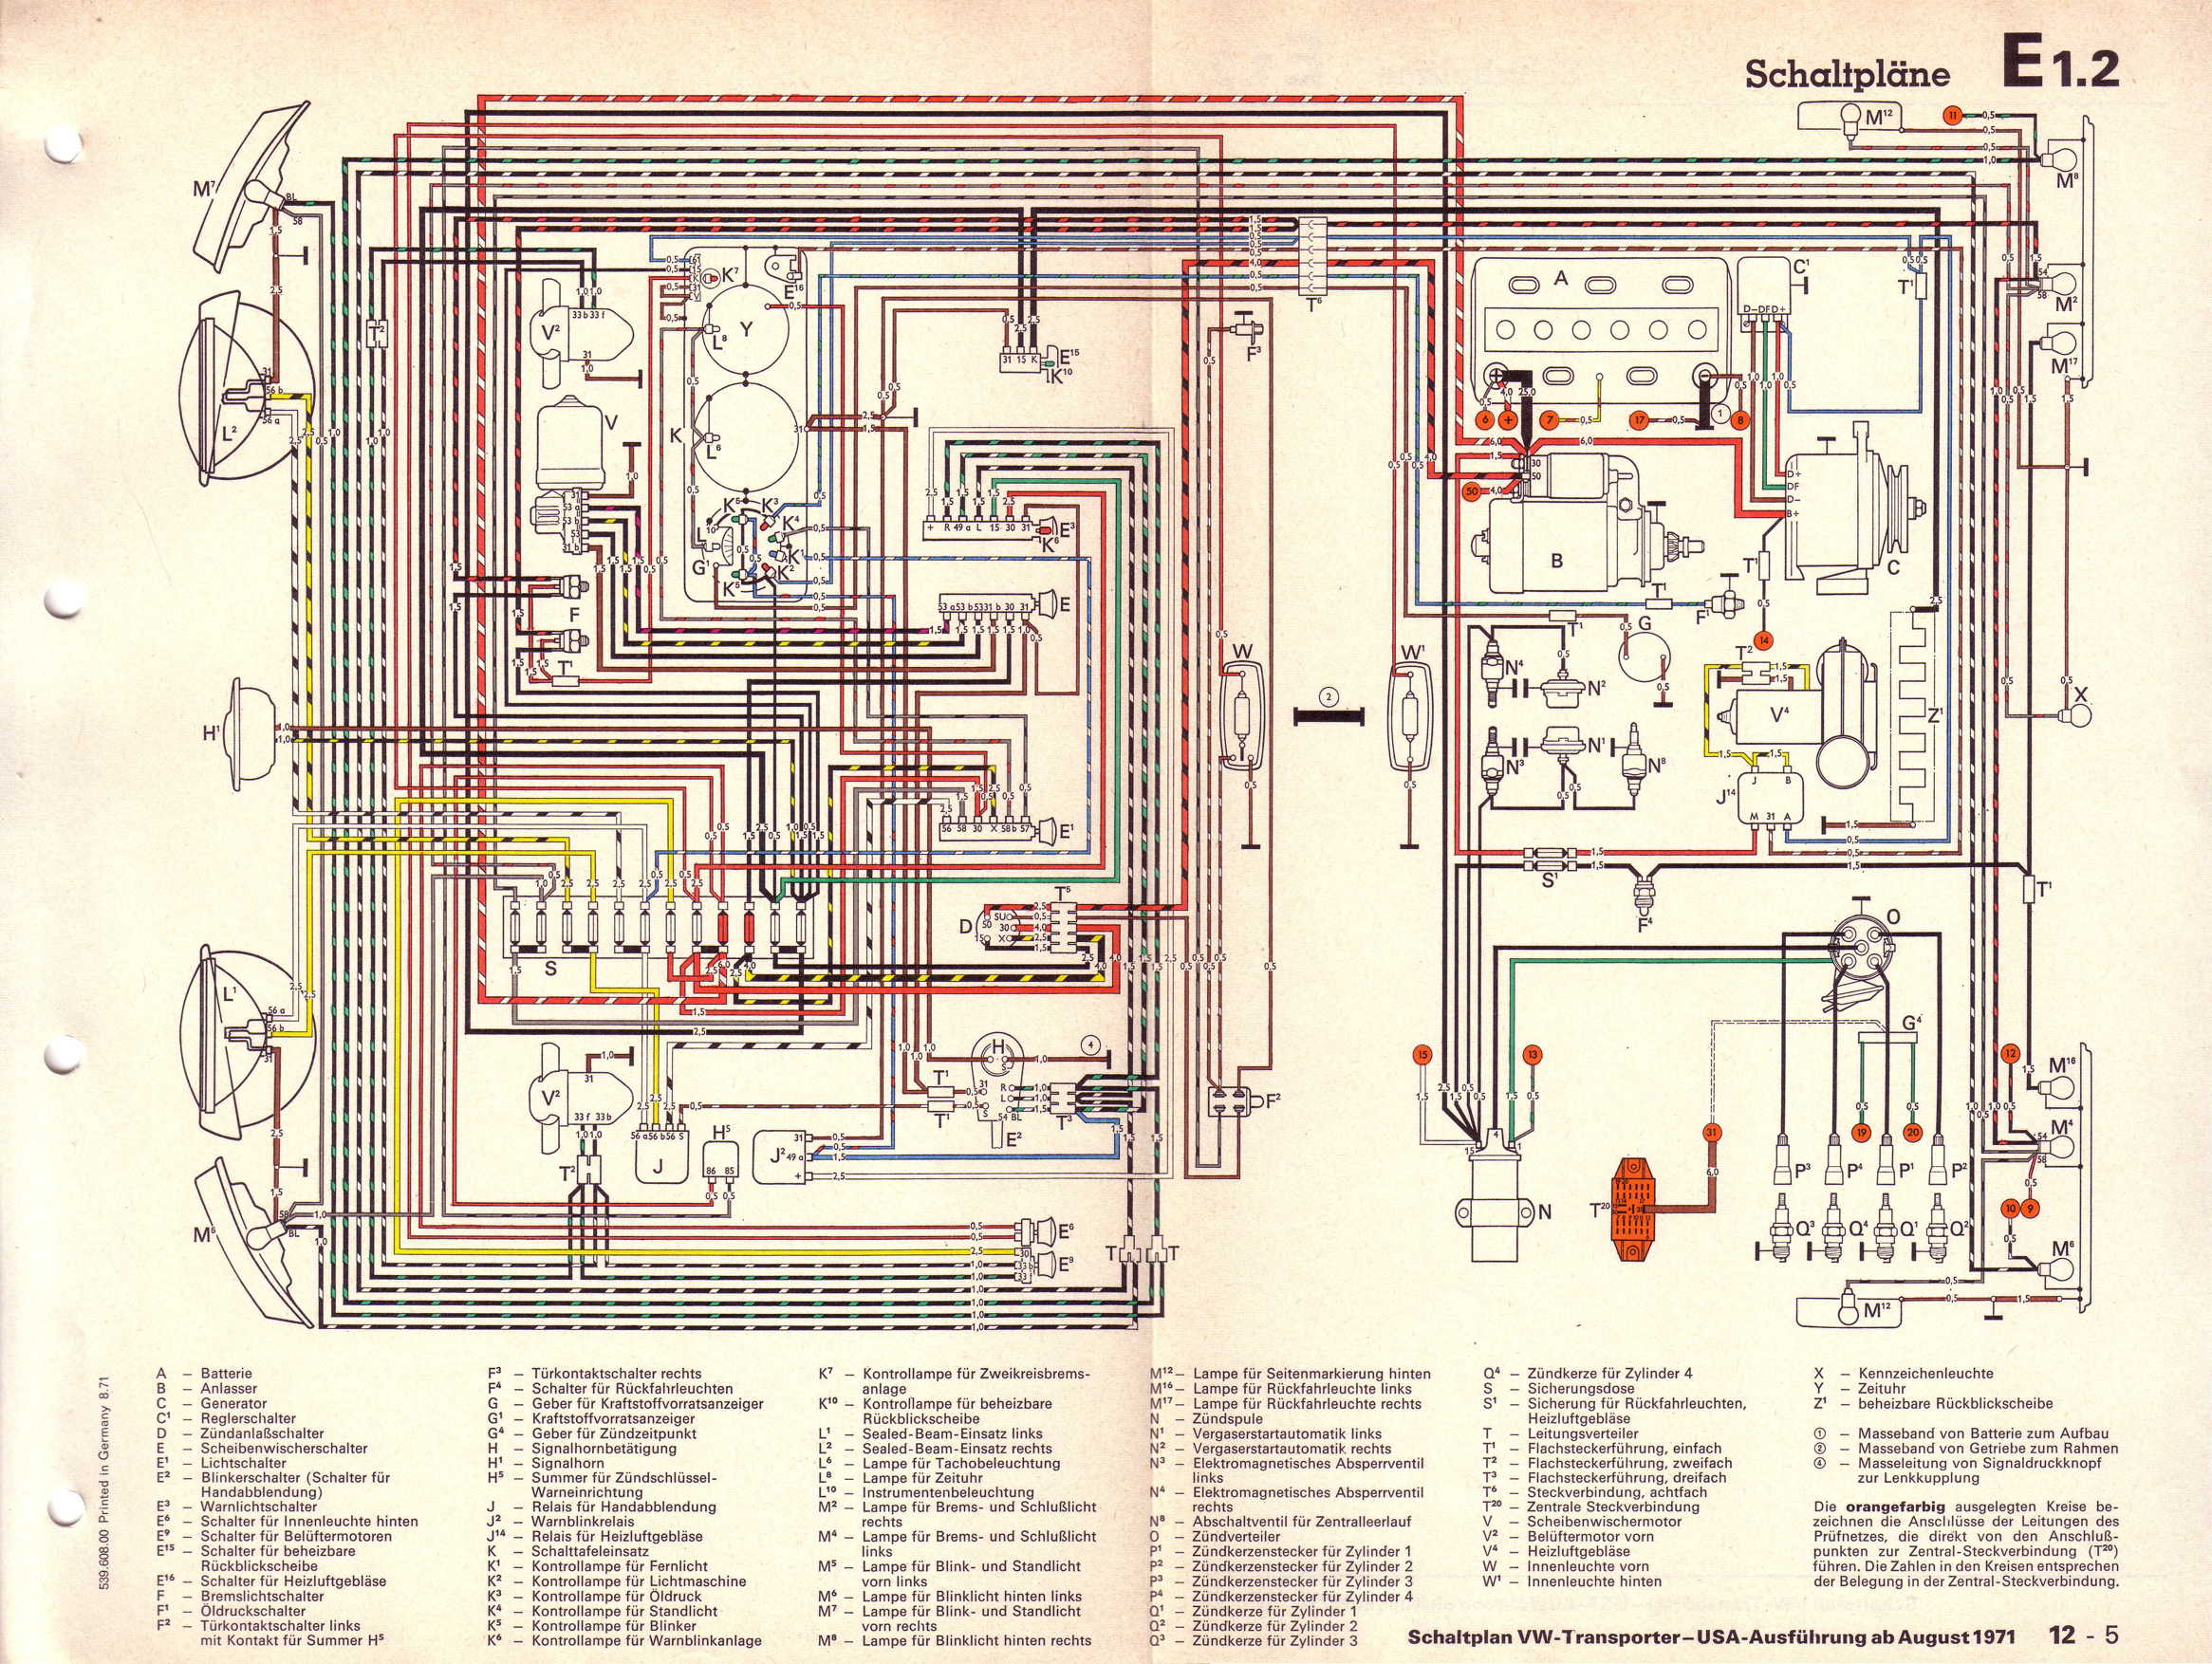 1977 vw wiring diagram wiring diagram gol1977 vw wiring diagram wiring diagram gp 1977 vw wiring diagram